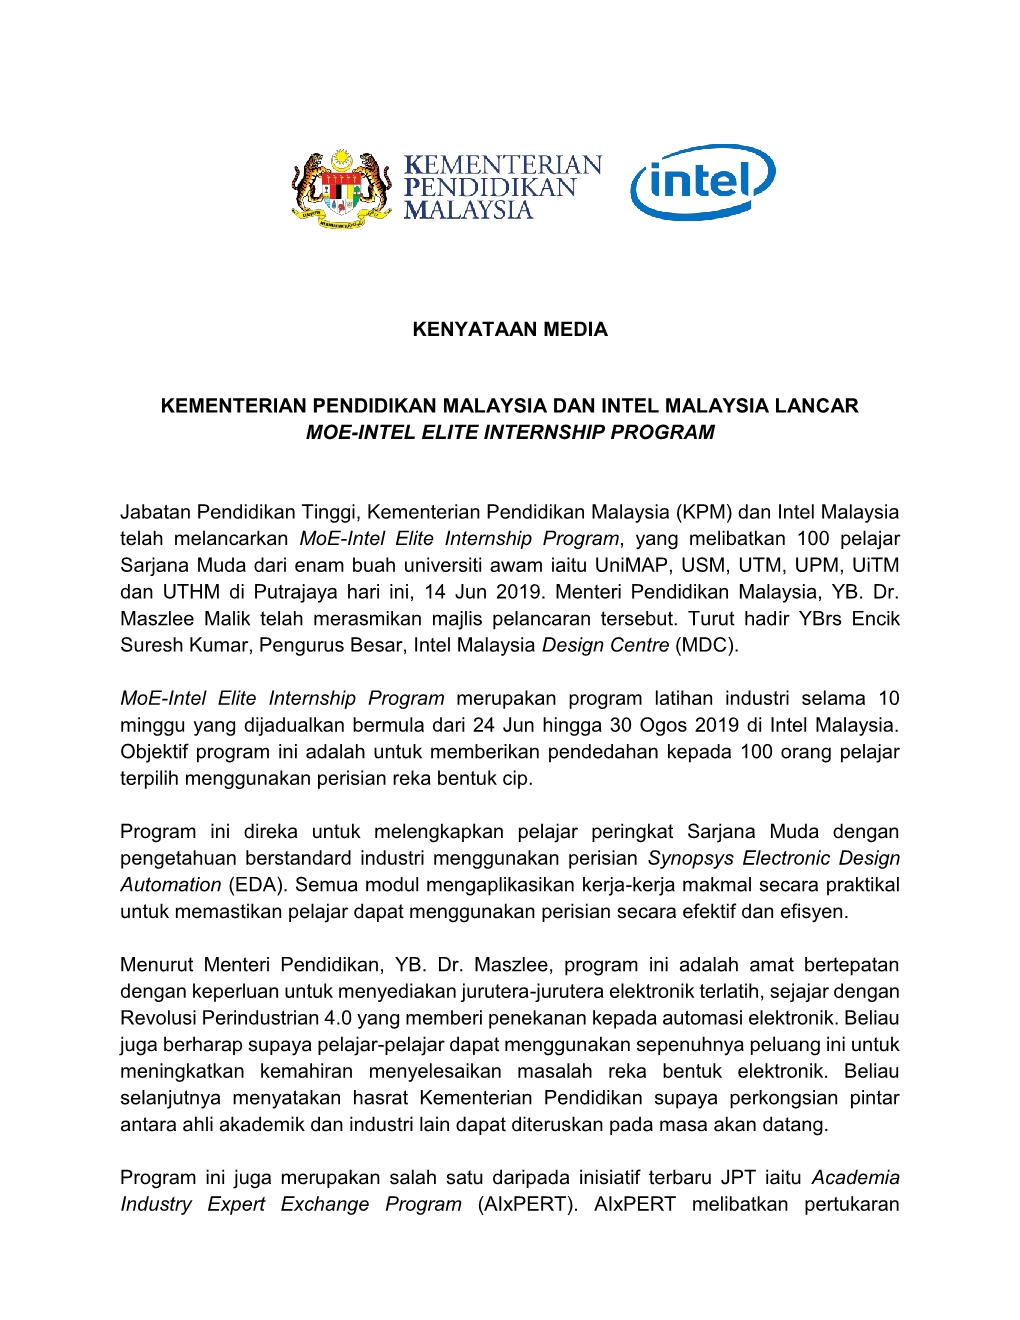 KENYATAAN MEDIA KPM MOE INTEL ELITE INTERNSHIP PROGRAM 14JUN20191